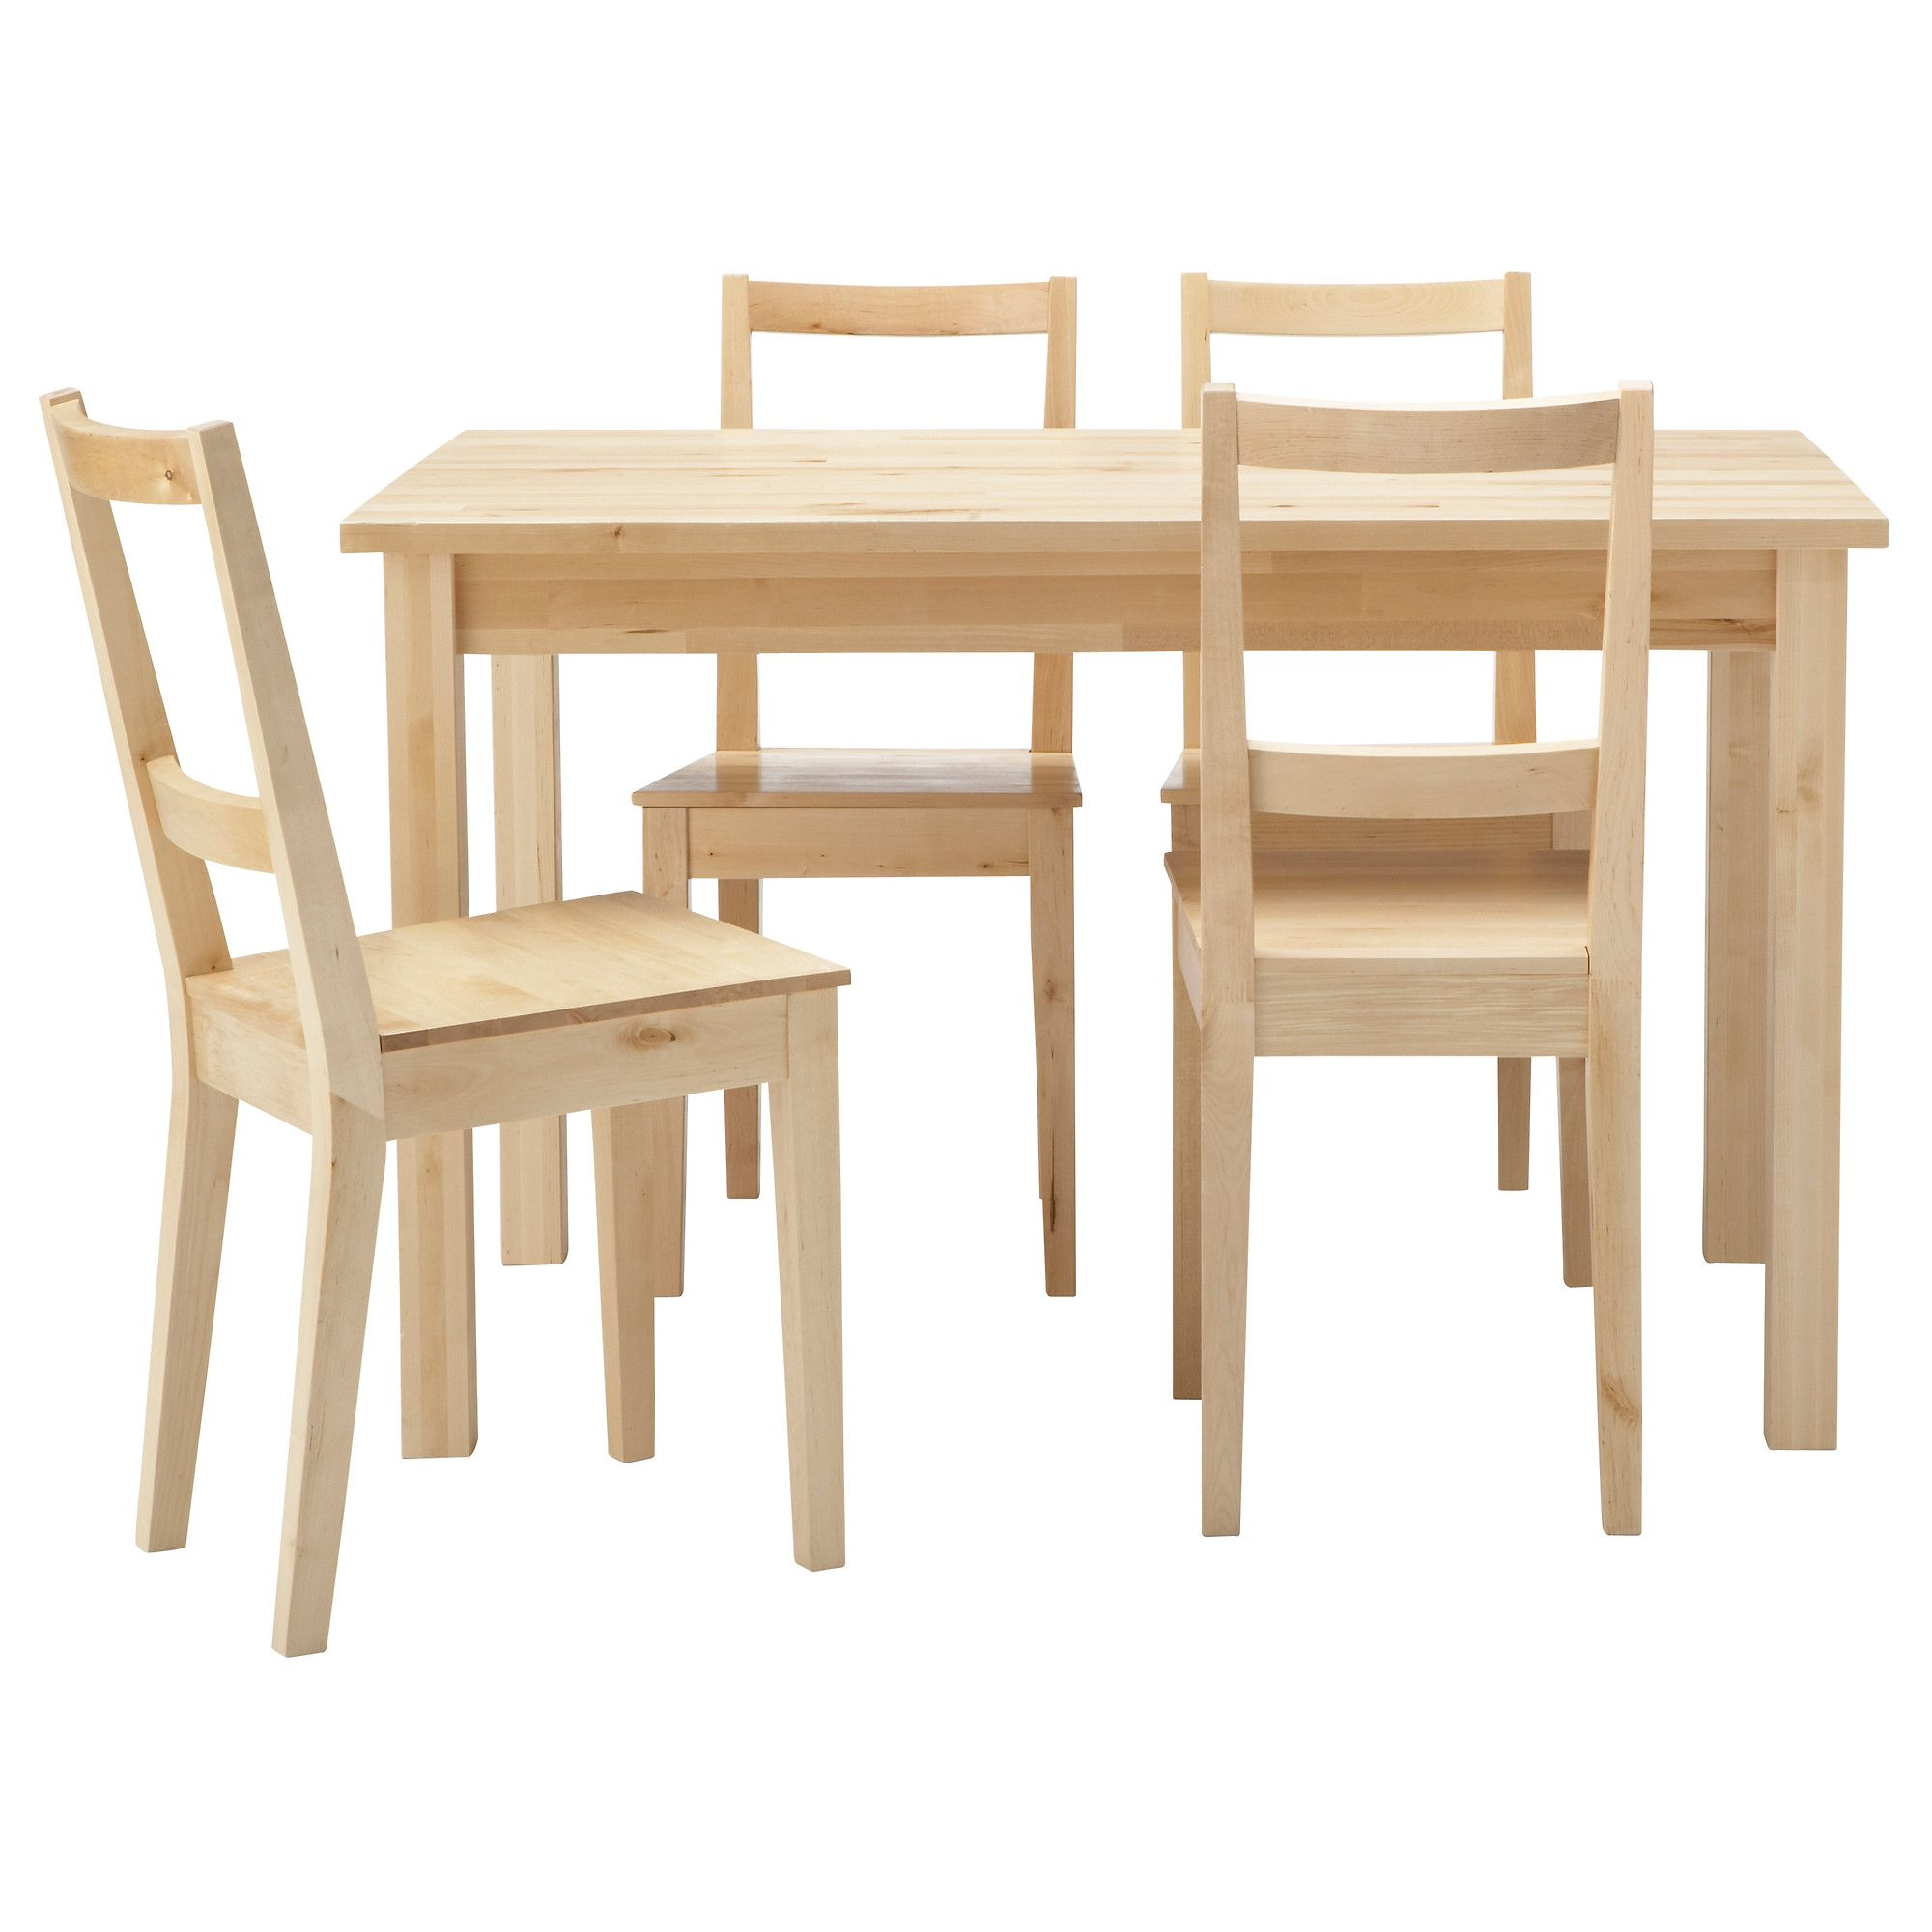 Wooden chair designs for dining table - Dining Room Small Dining Sets Design For Modern Dining Room Design With Wooden Dining Table Design And Wood Dining Chair Design Ideas Modern Dining Sets